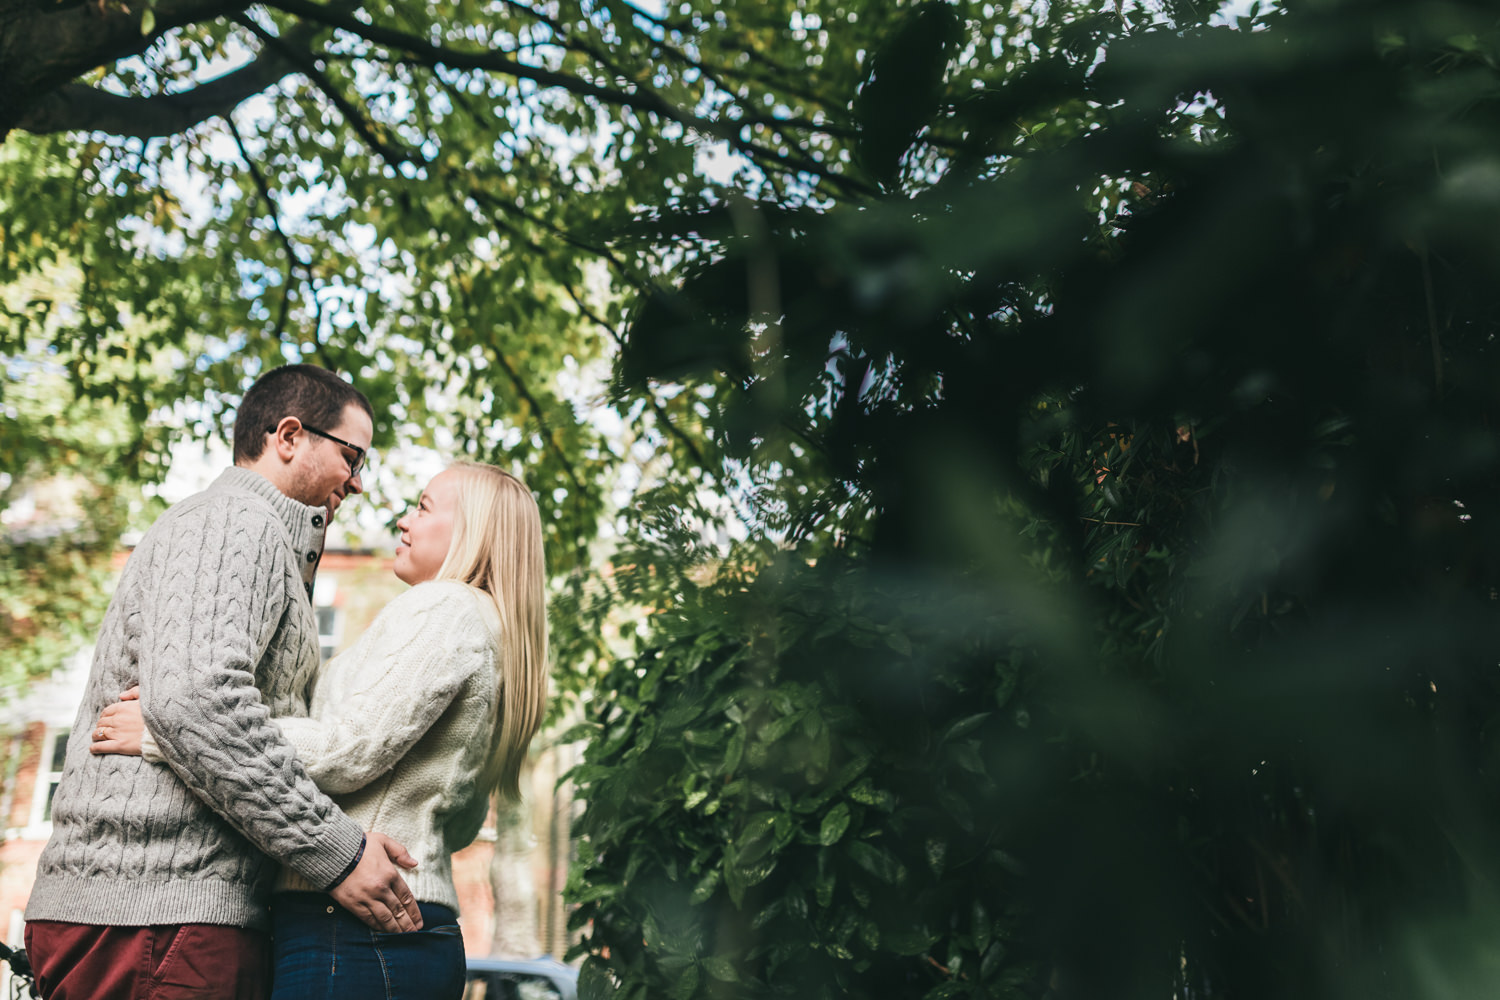 Emily & Karlo | London Engagement Photography-25.JPG